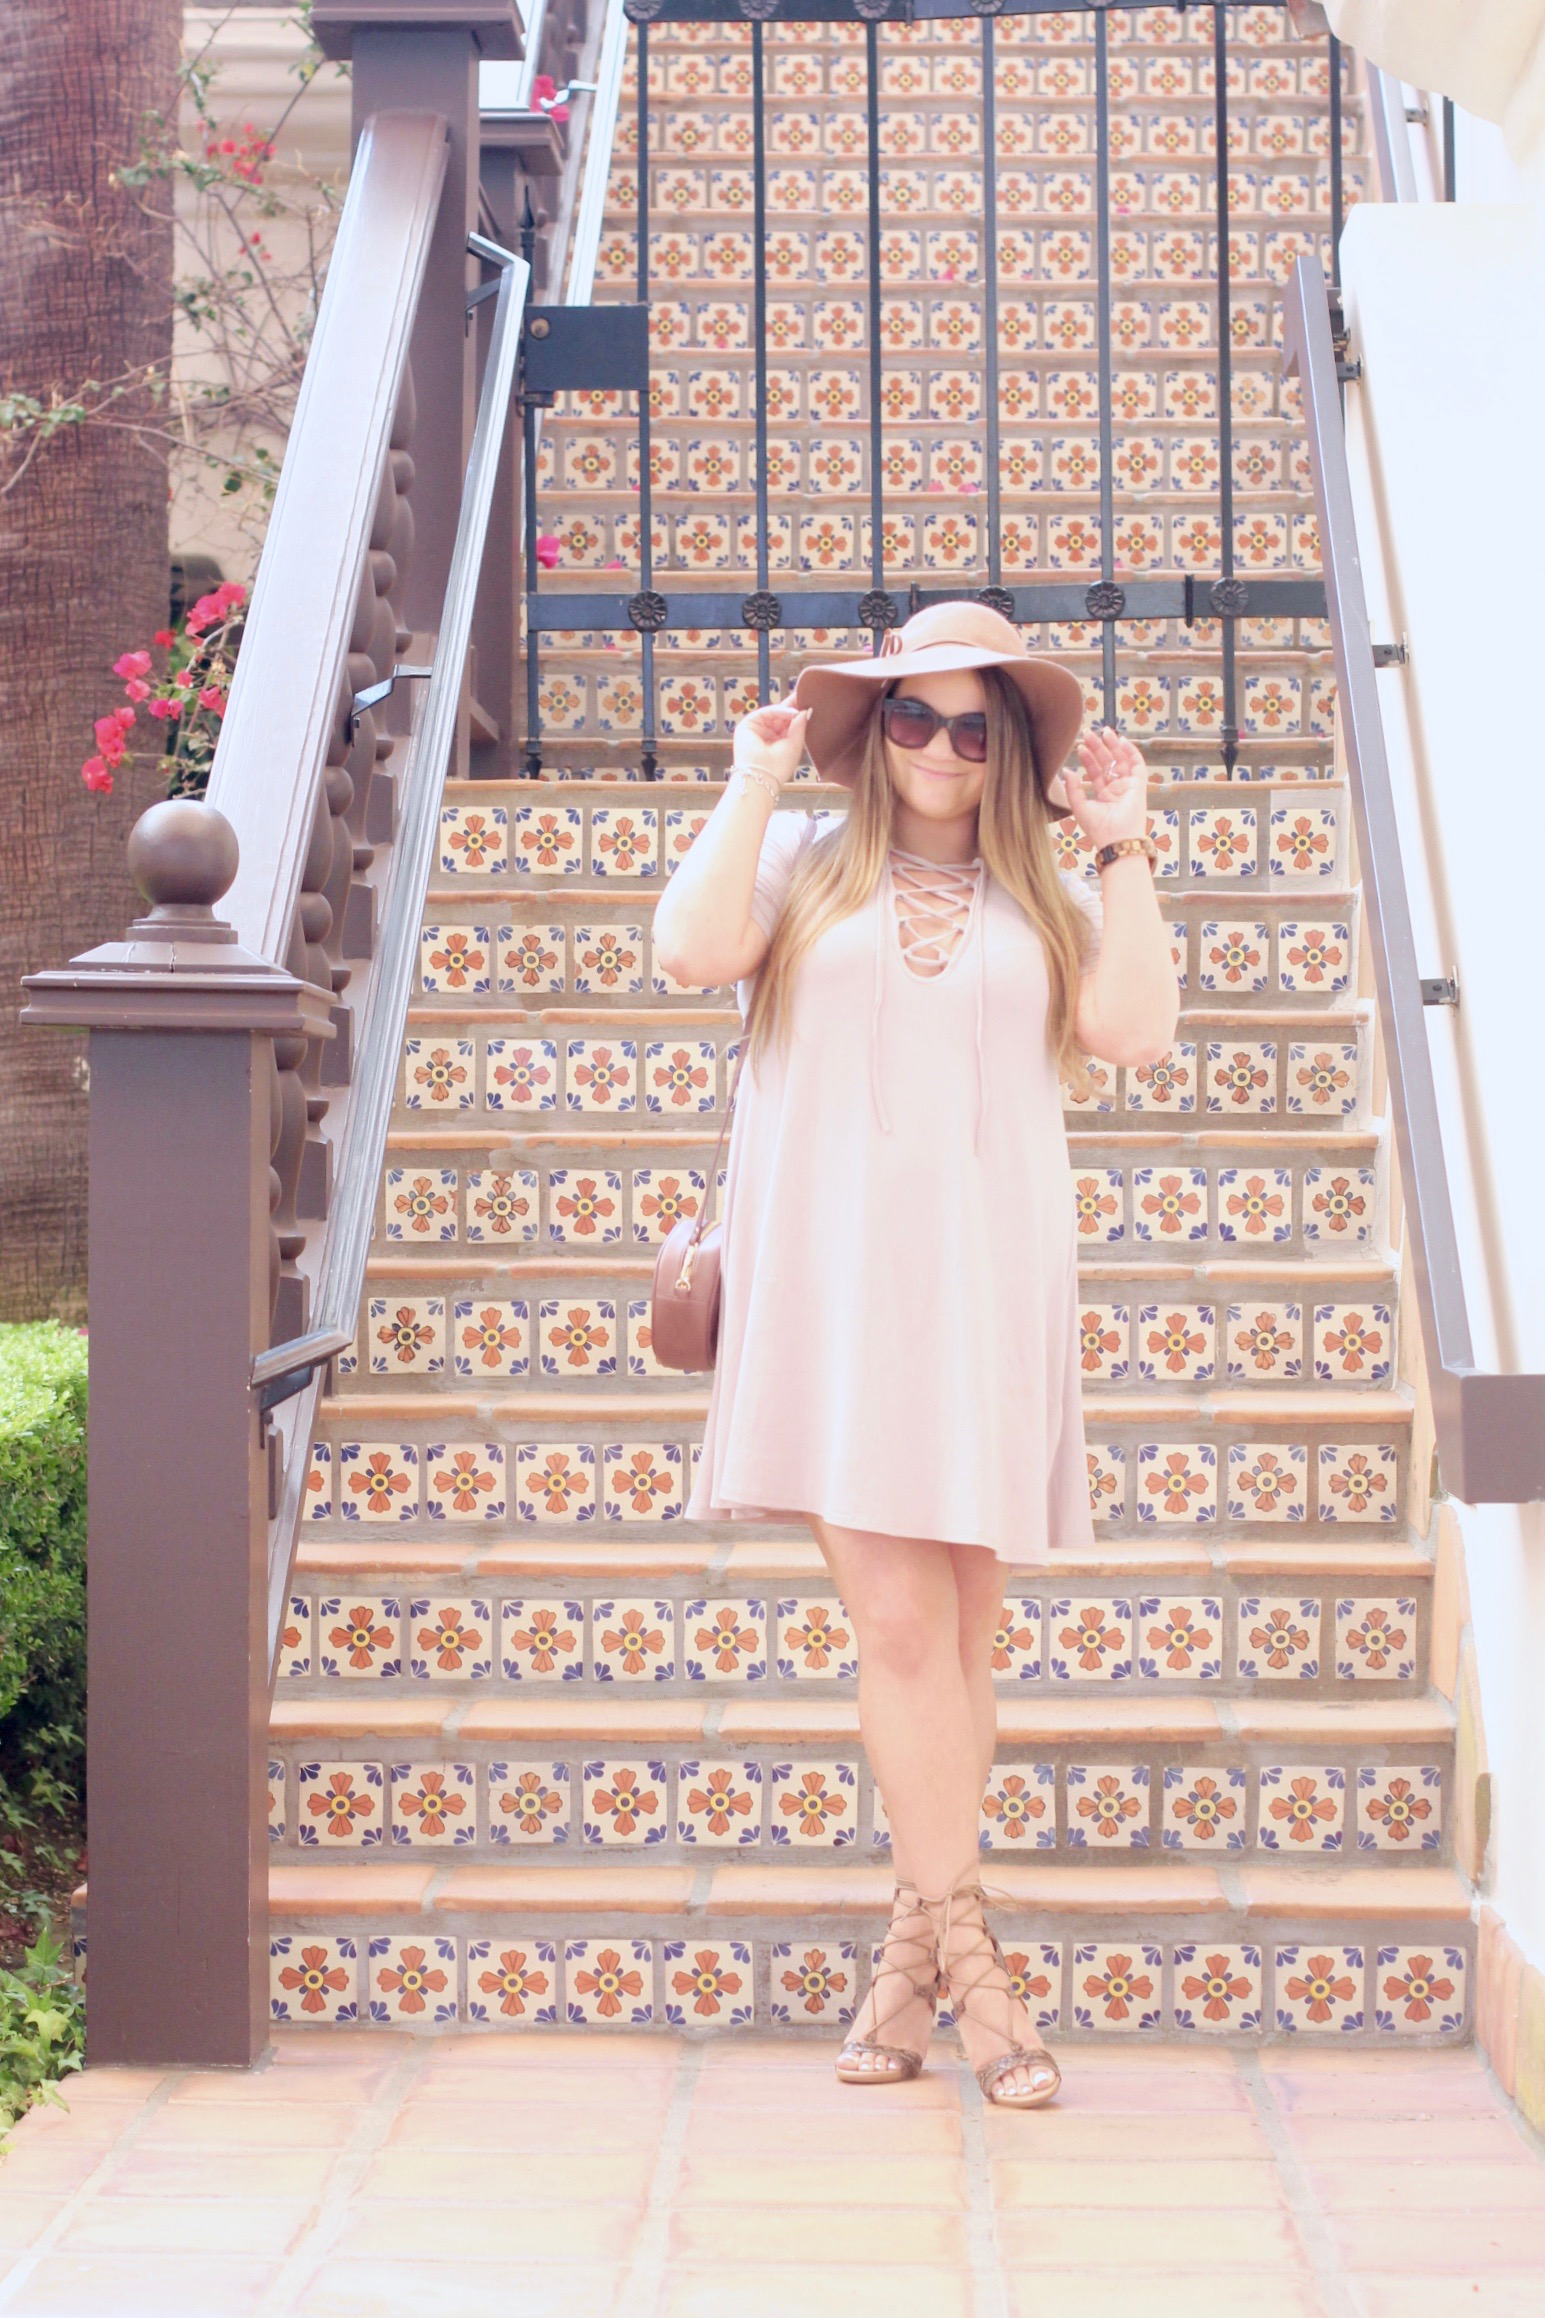 missyonmadison, melissa tierney, heavenly couture, heavenly couture dress, lace up dress, lace up front dress, beige lace up front dress, style blogger, fashion blogger, la blogger, la style, fall style, deblossom shoes, lace up heels, lace up reptile heels, lace up heeled sandals, ora delphine, crossbody bag, black sunglasses, tan floppy hat, what to wear for fall, fall 2016 style, straight hair for fall, fall heels, beige swing dress, lace up dress,